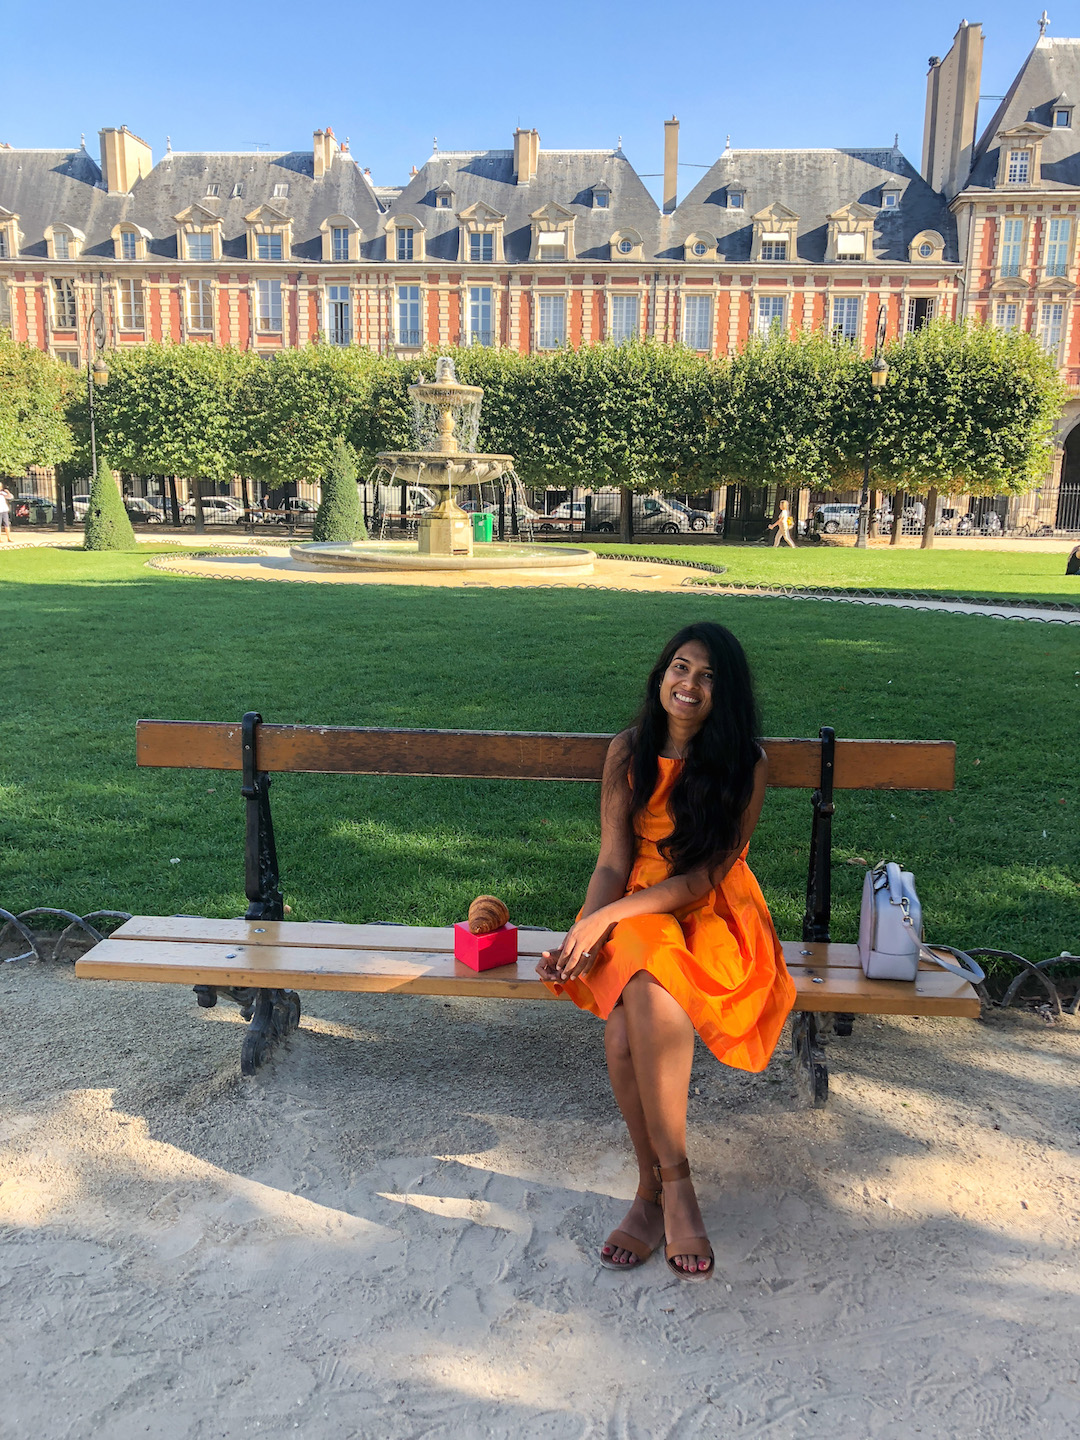 Her Travel Edit at Place des Vosges